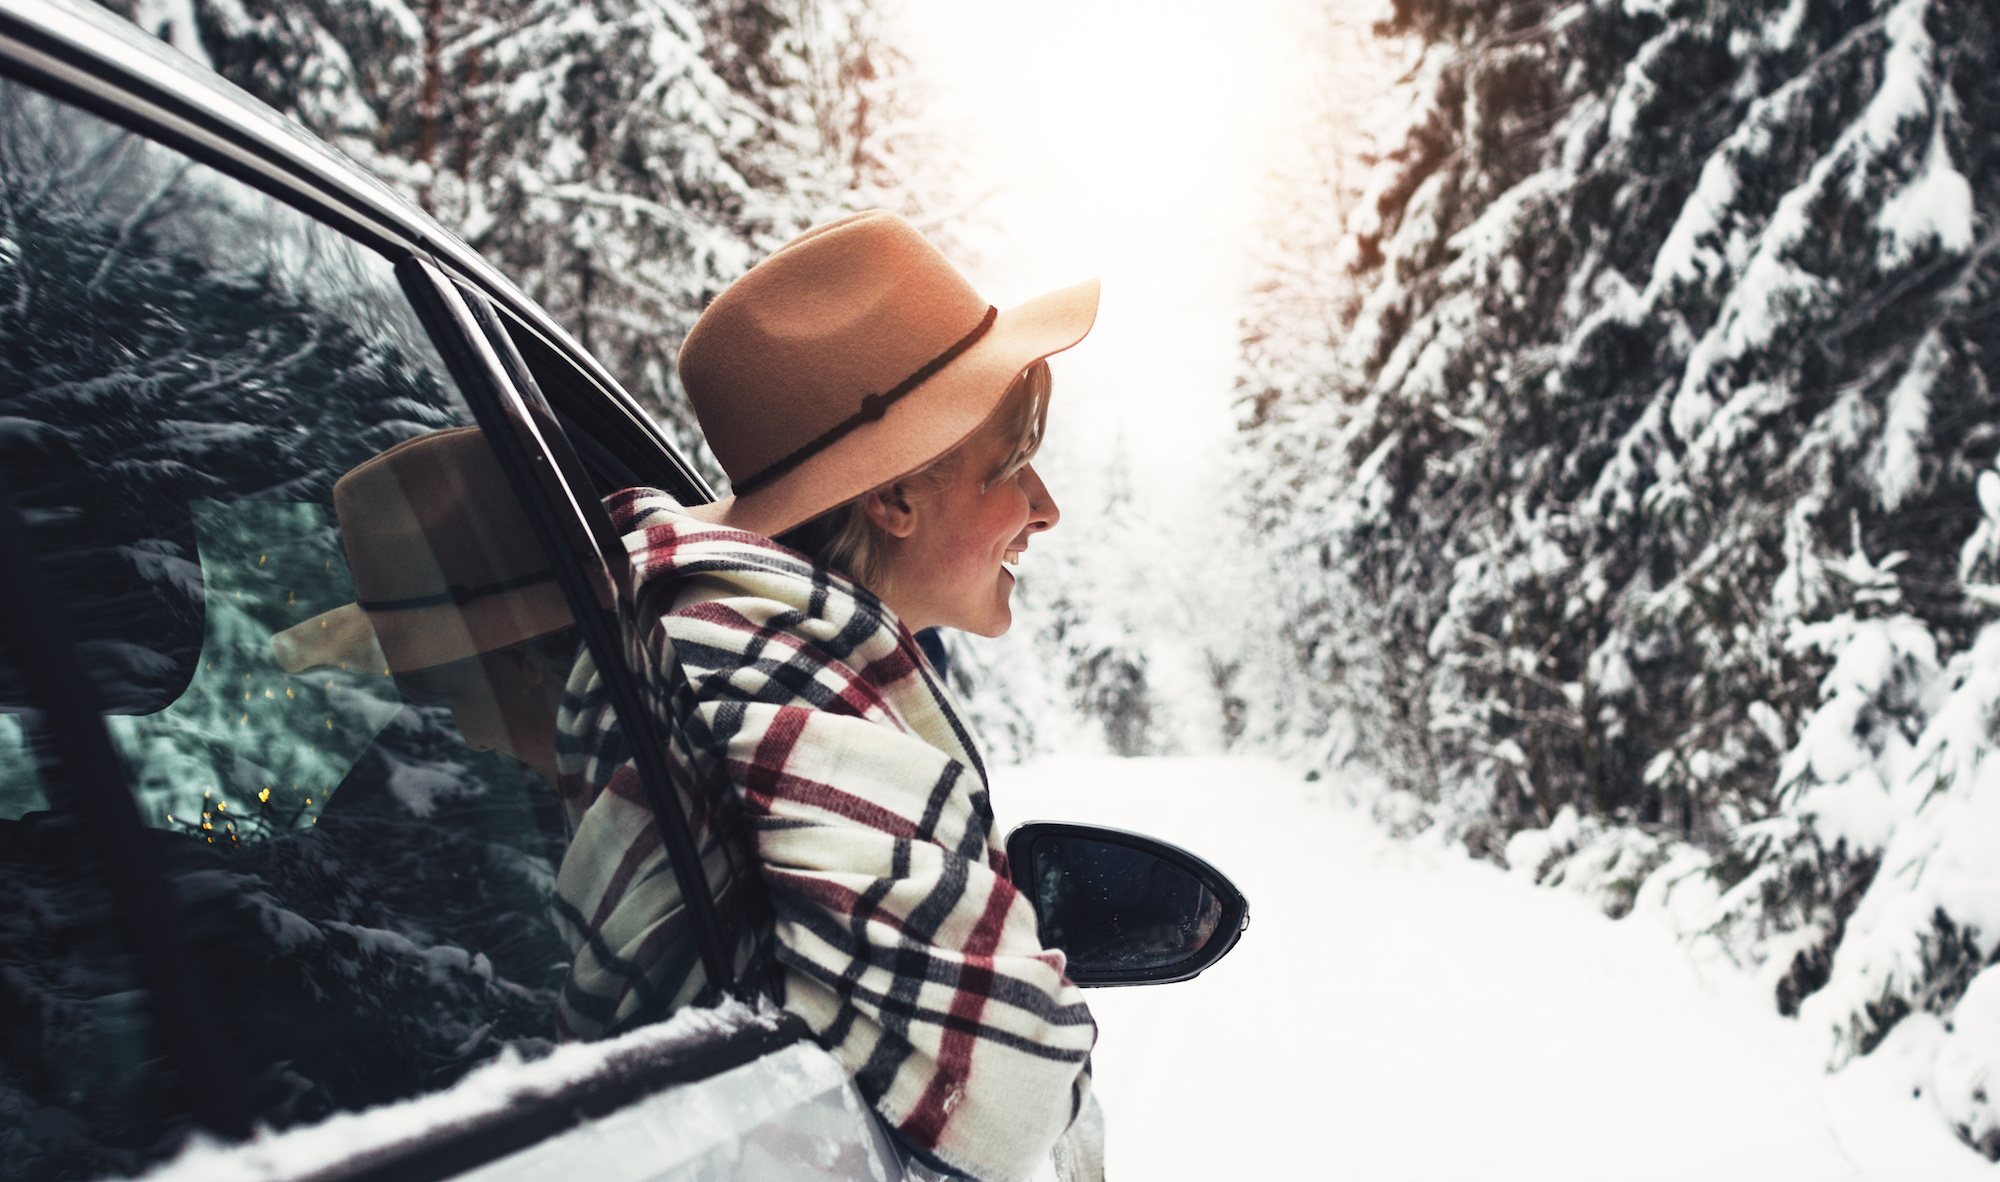 Activities to Enjoy On the Road in December